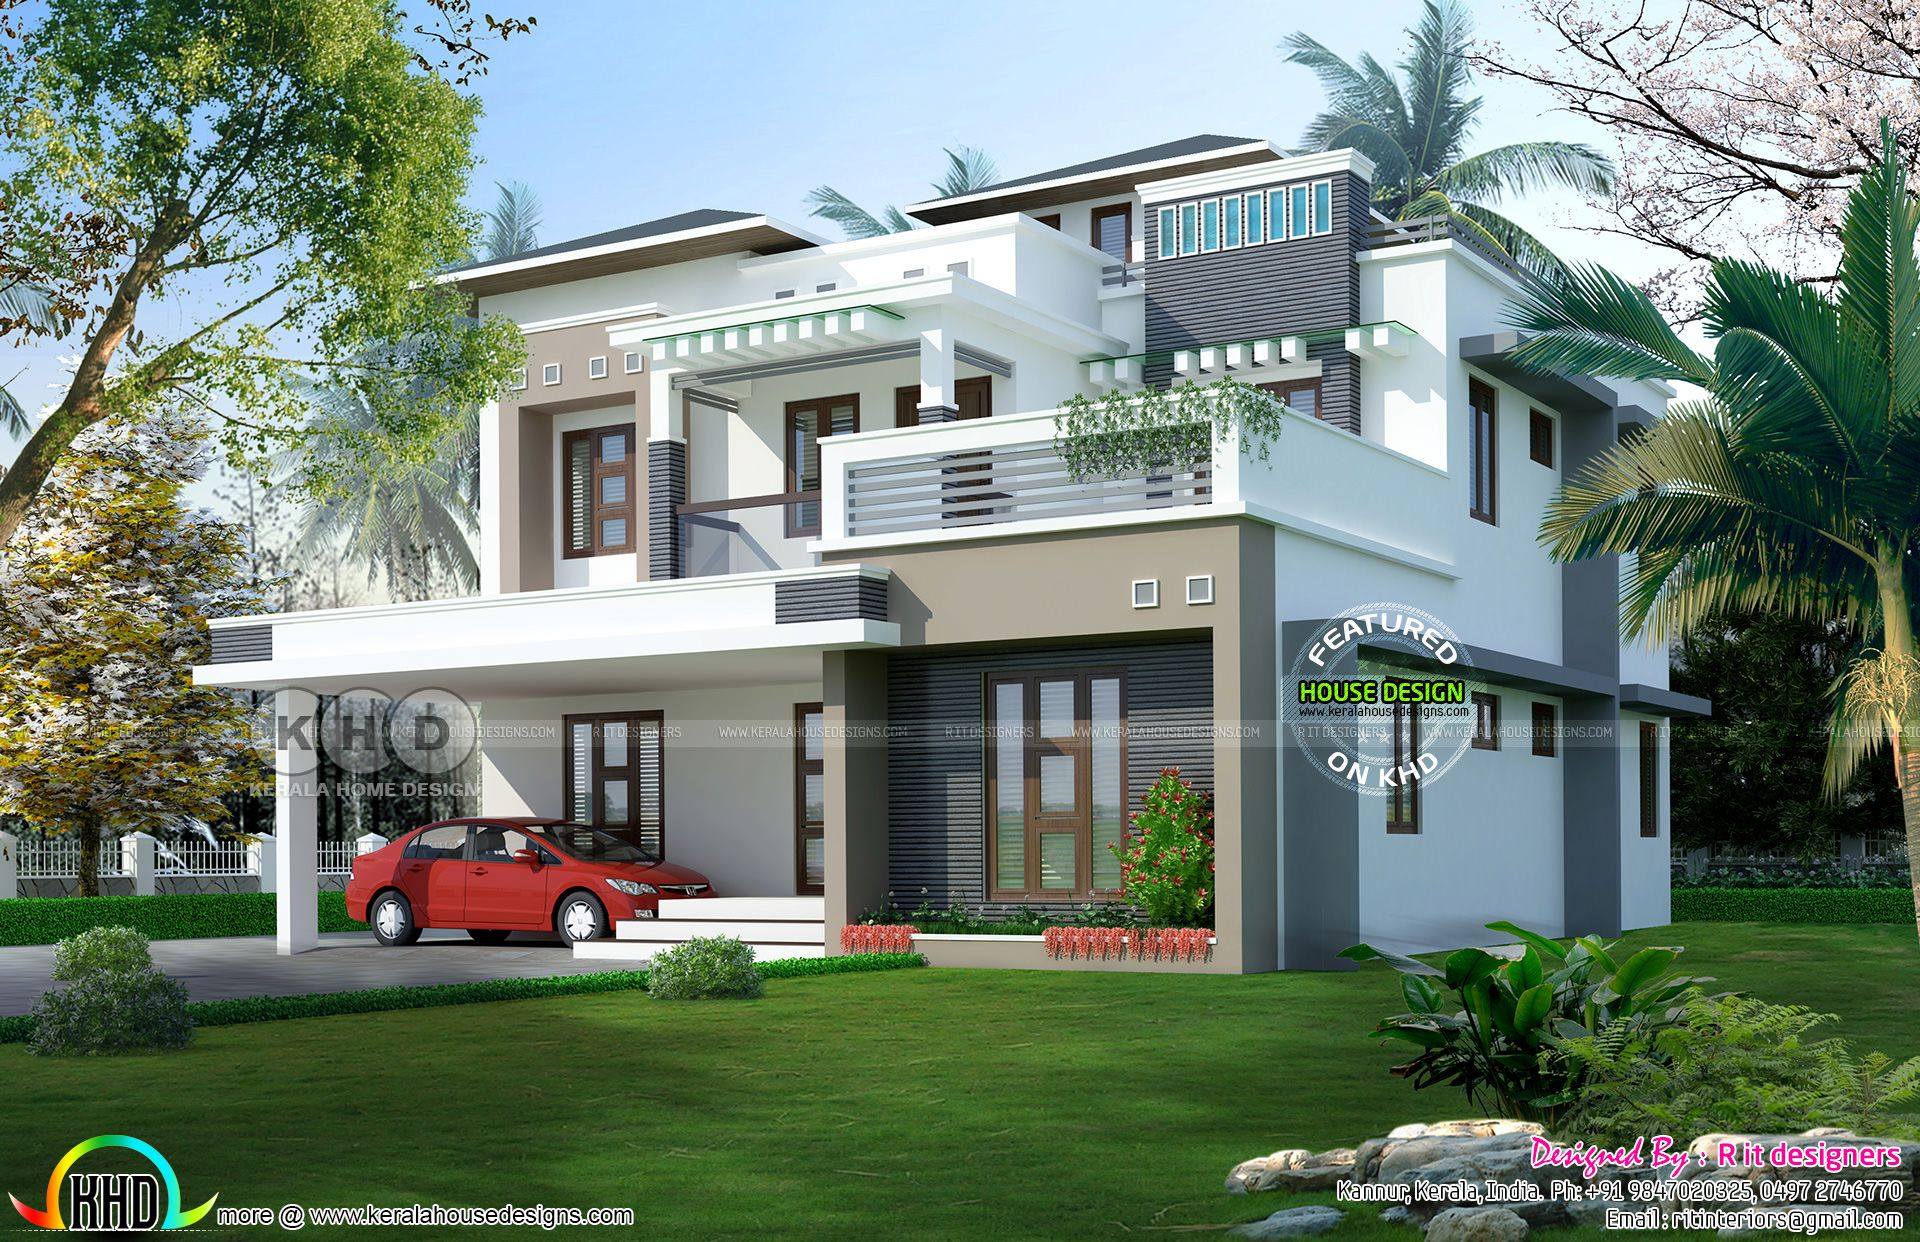 6278570004934fd95023a2b7212f7df0 - 11+ Indian Small House Design 2 Bedroom Gif